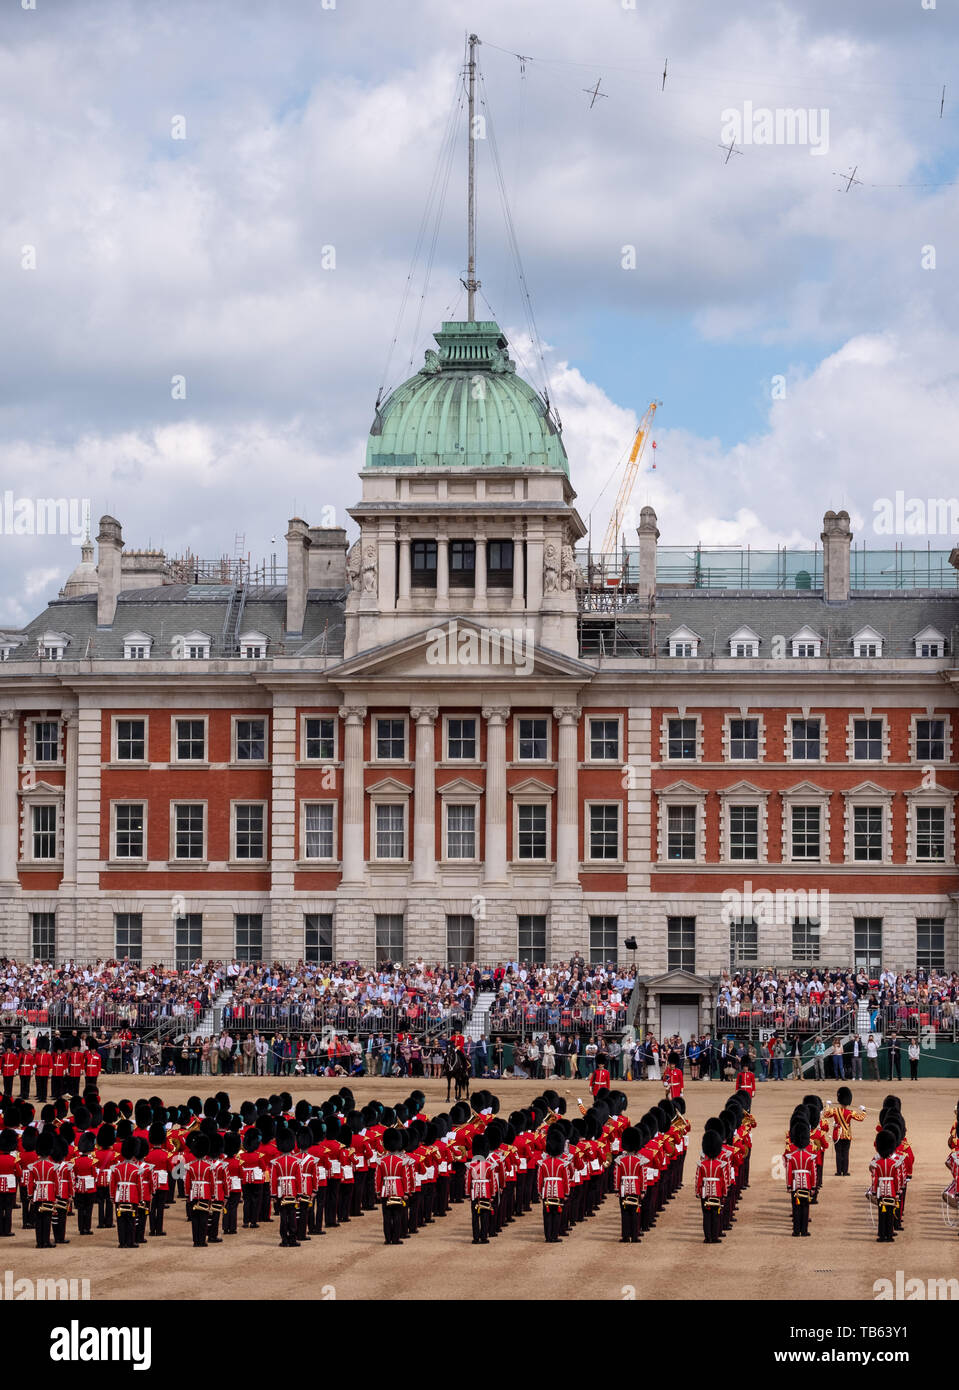 Trooping the Colour, military ceremony at Horse Guards, Westminster UK with the Household Division in their bearskins, musicians from the massed bands - Stock Image